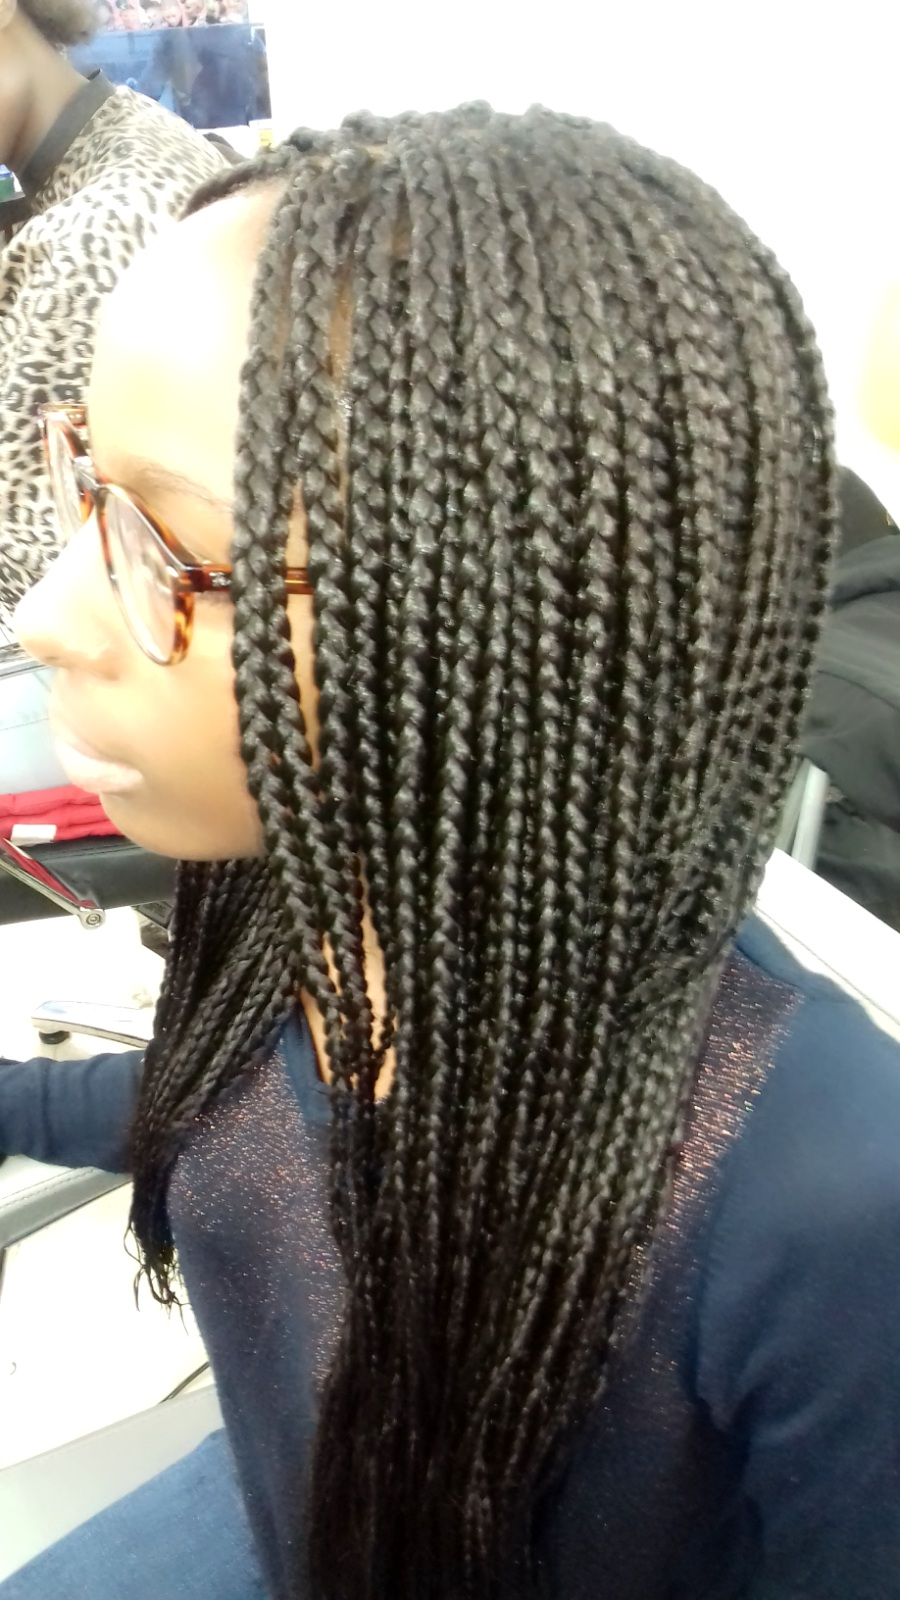 salon de coiffure afro tresse tresses box braids crochet braids vanilles tissages paris 75 77 78 91 92 93 94 95 TLNBELXK